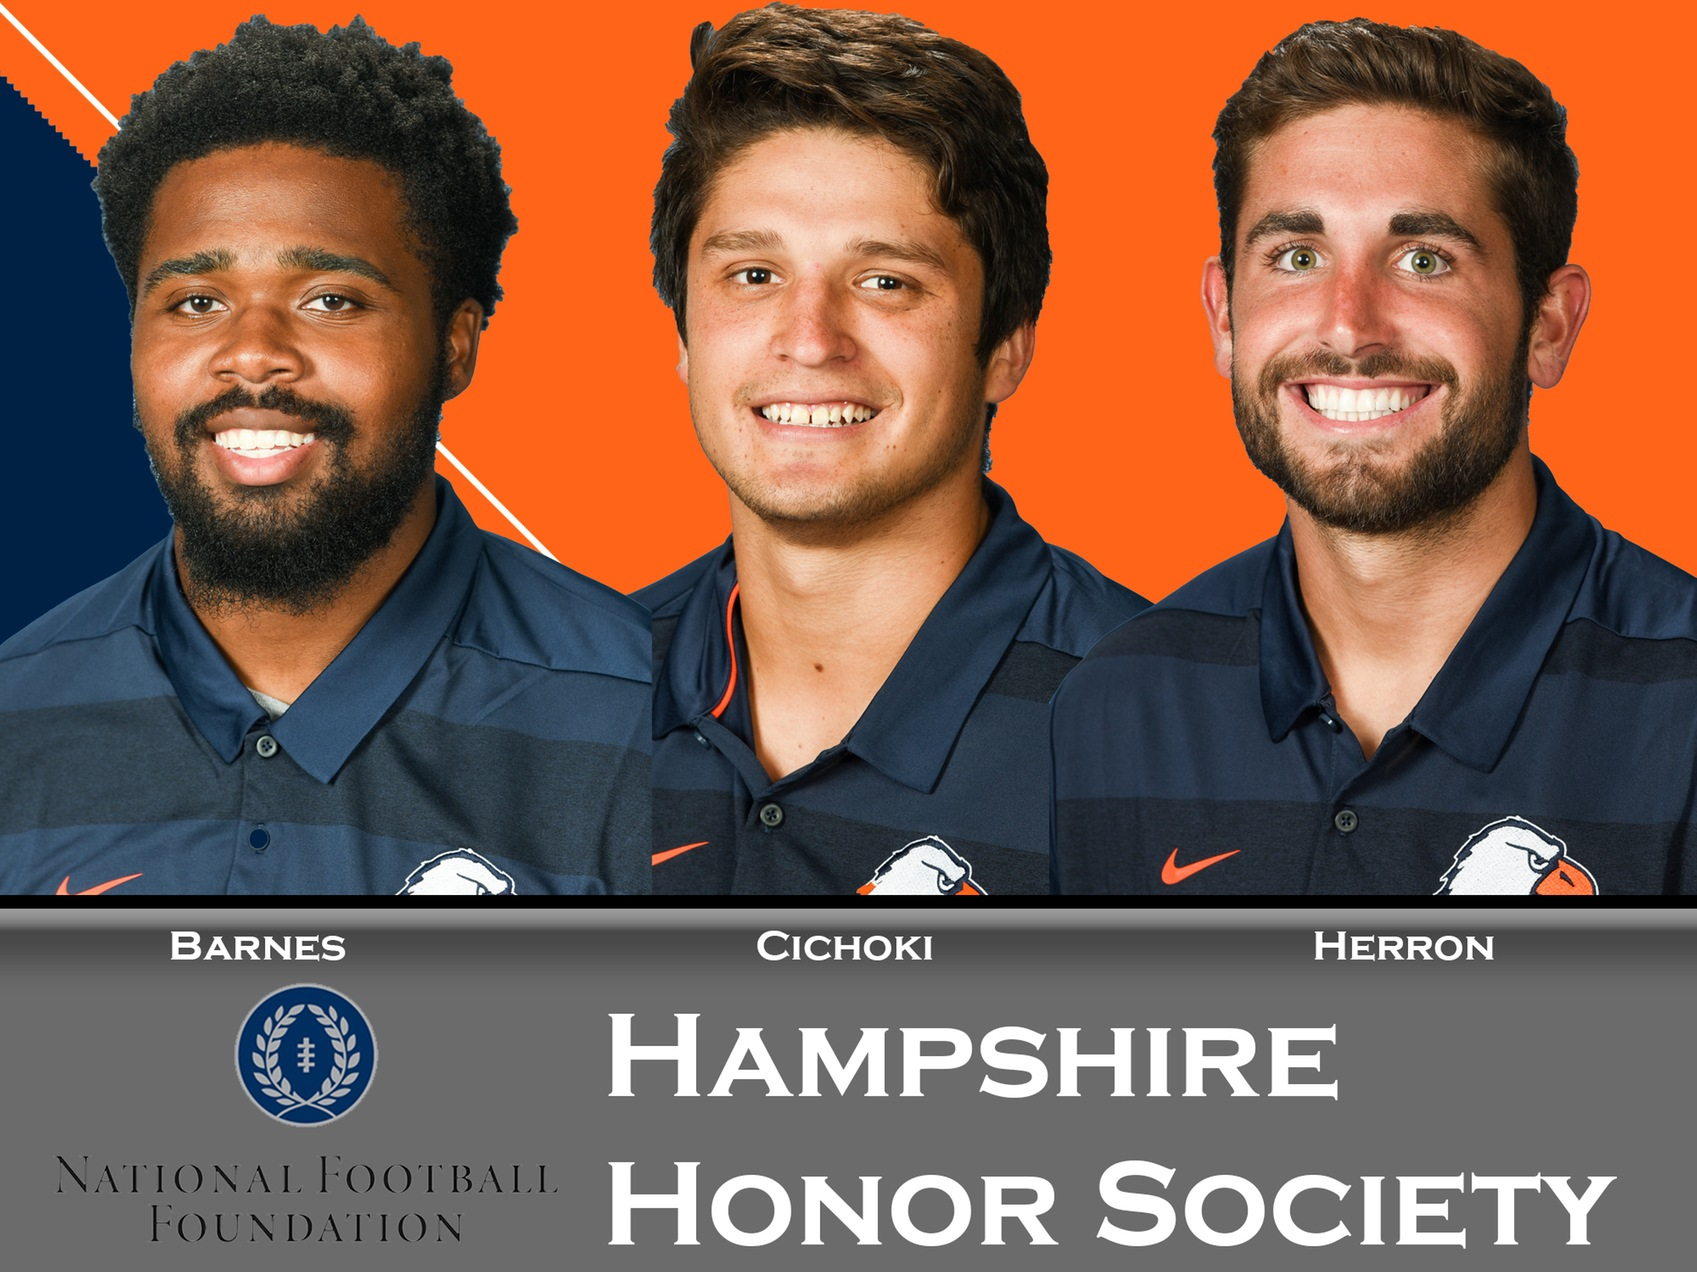 Three Eagles tabbed for induction into NFF Hampshire Honor Society